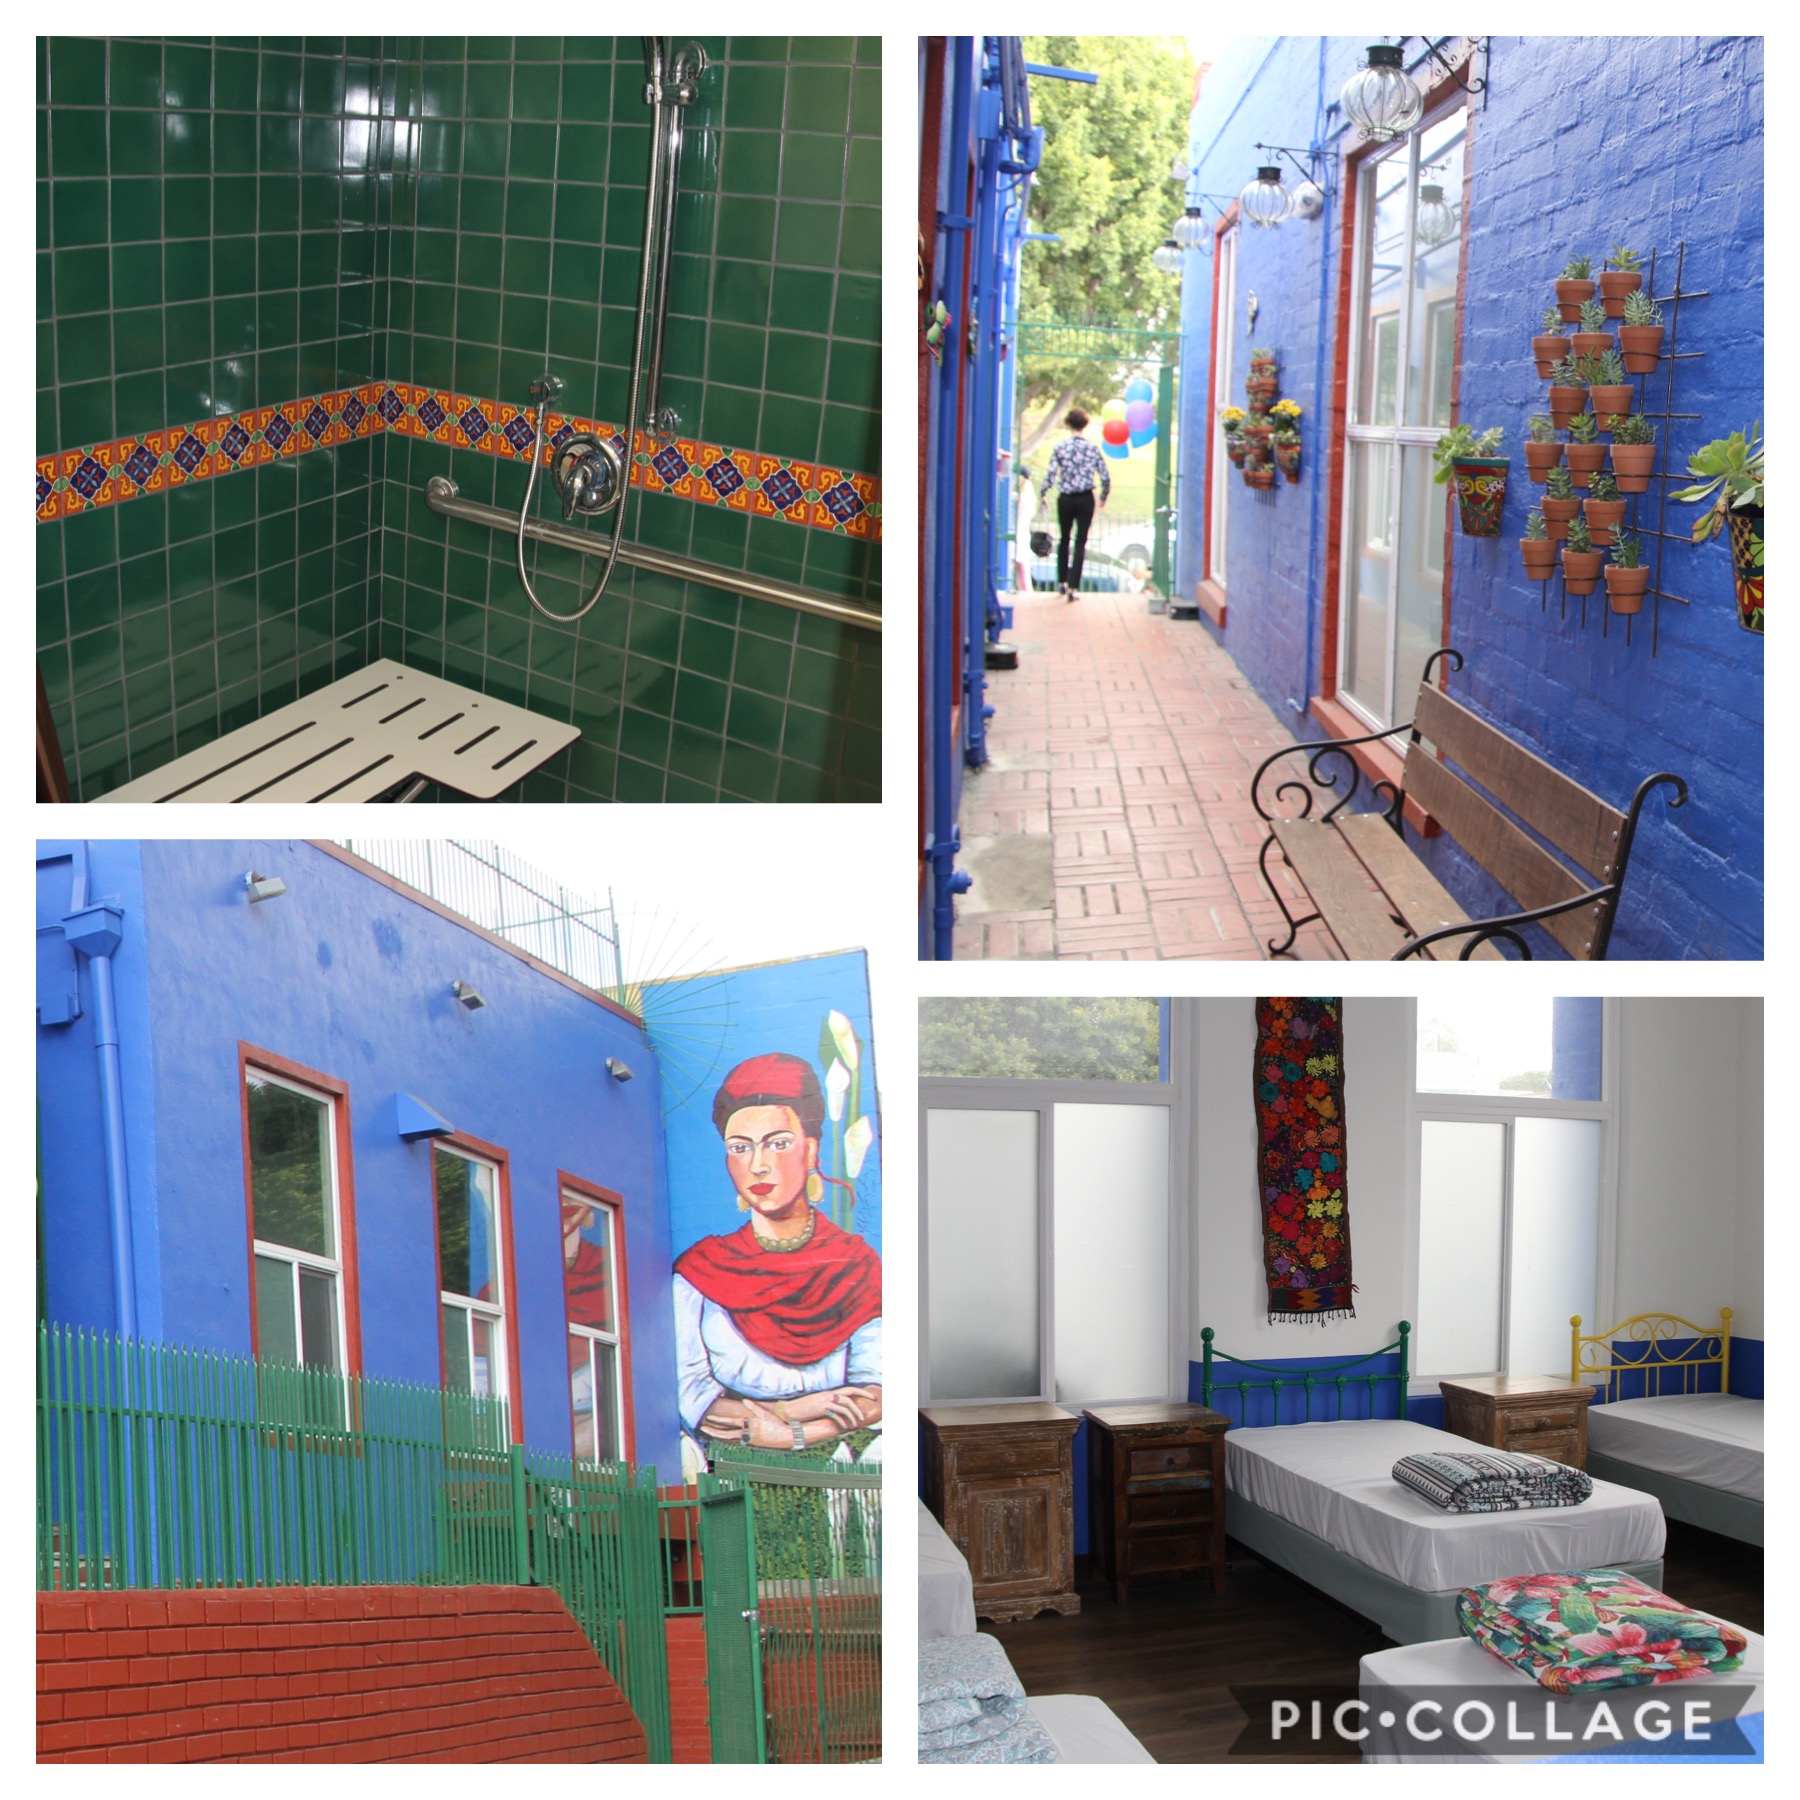 Casa Azul Collage 6-22-2020